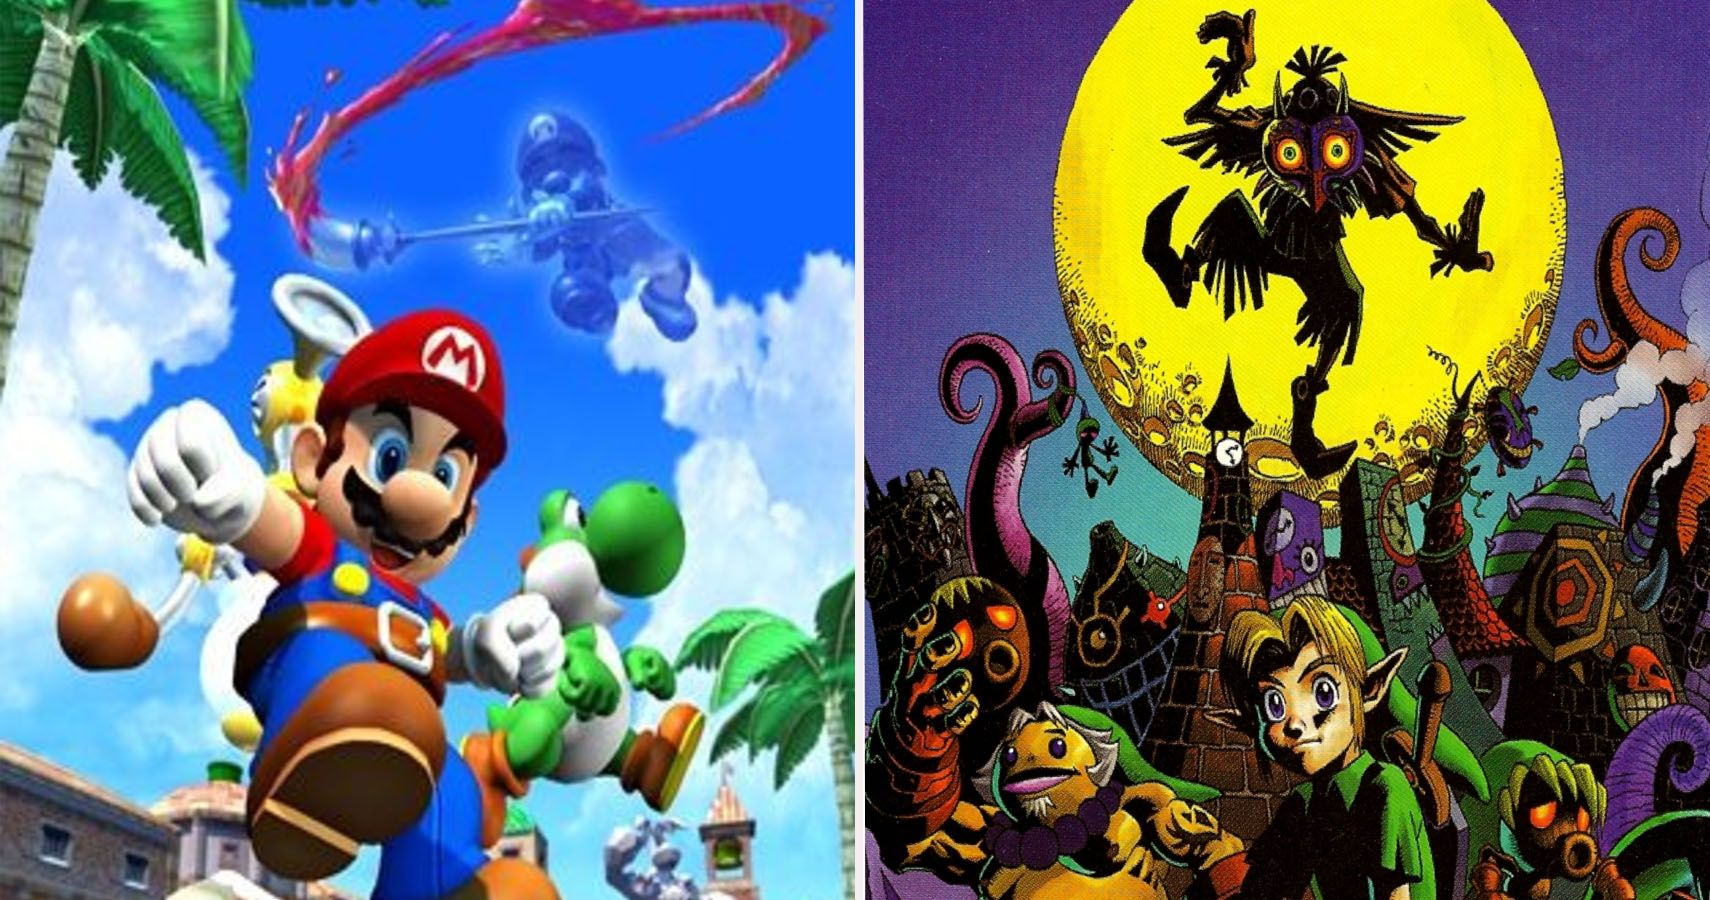 10 Of The Best Games Ever (According to Nintendo Power)